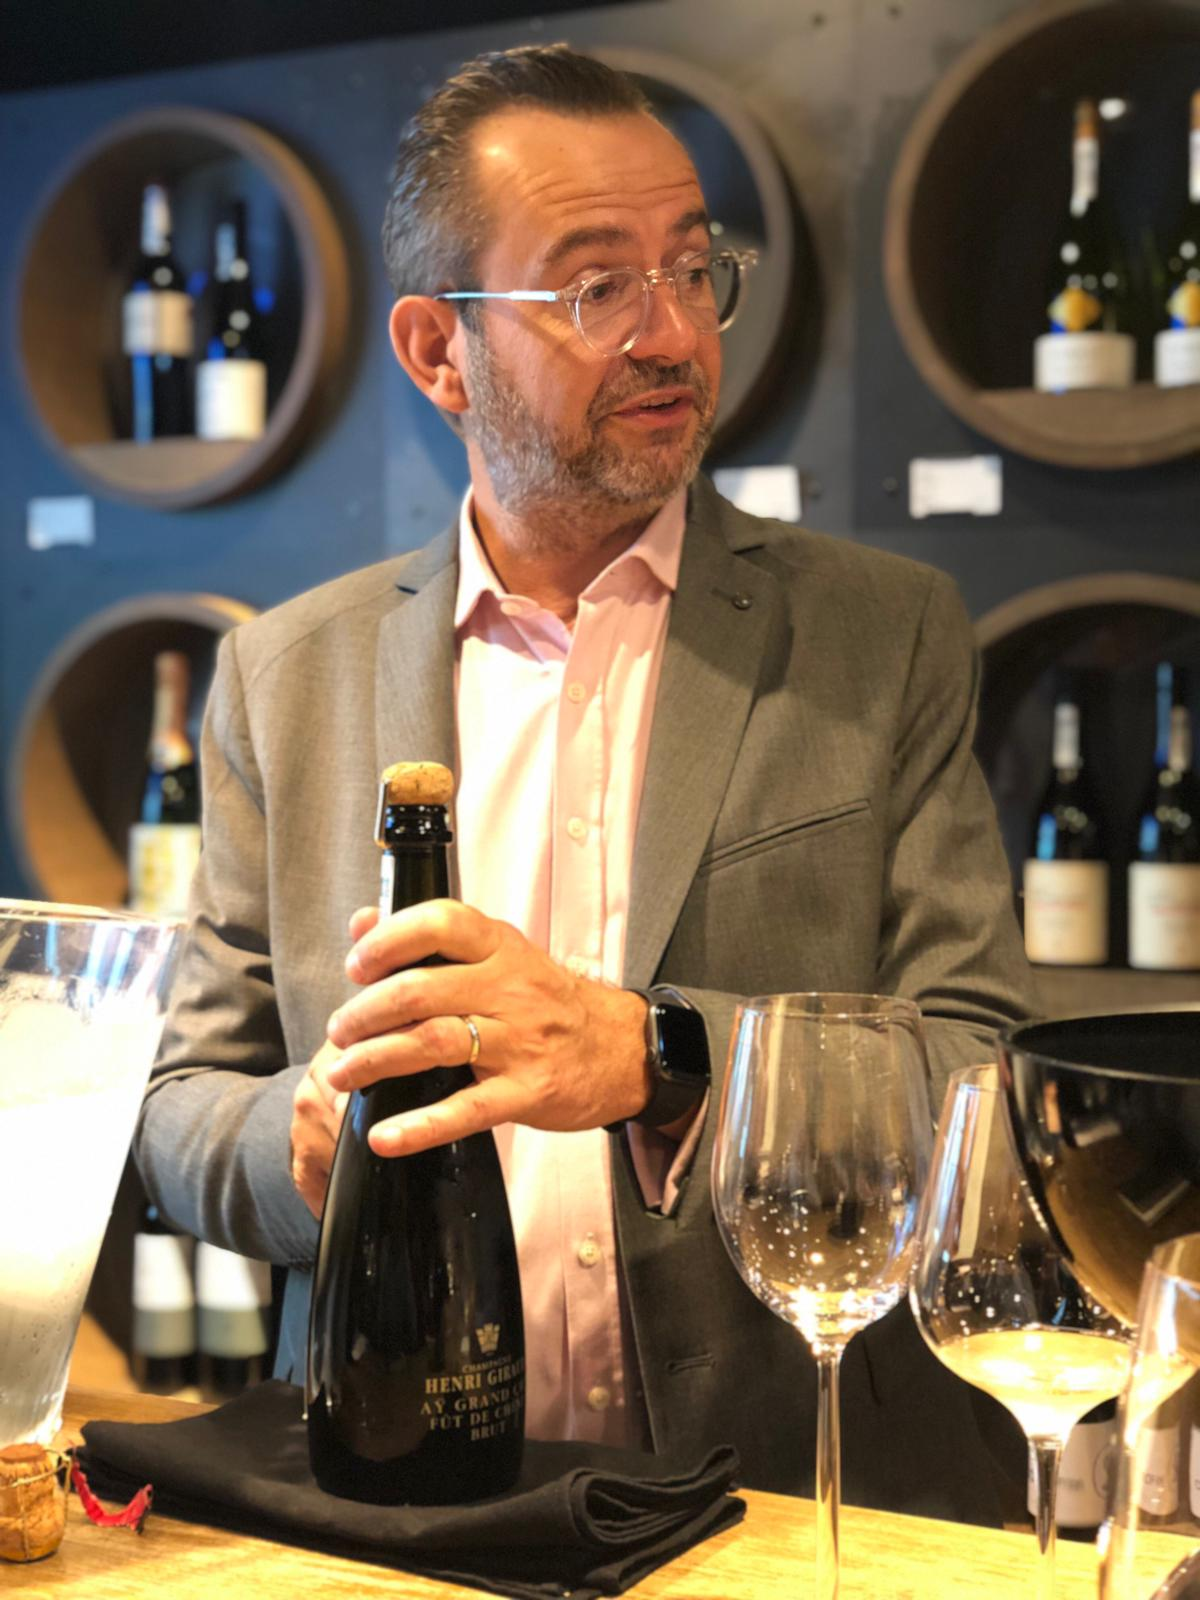 Stephane, Sales Director of Henri Giraud House